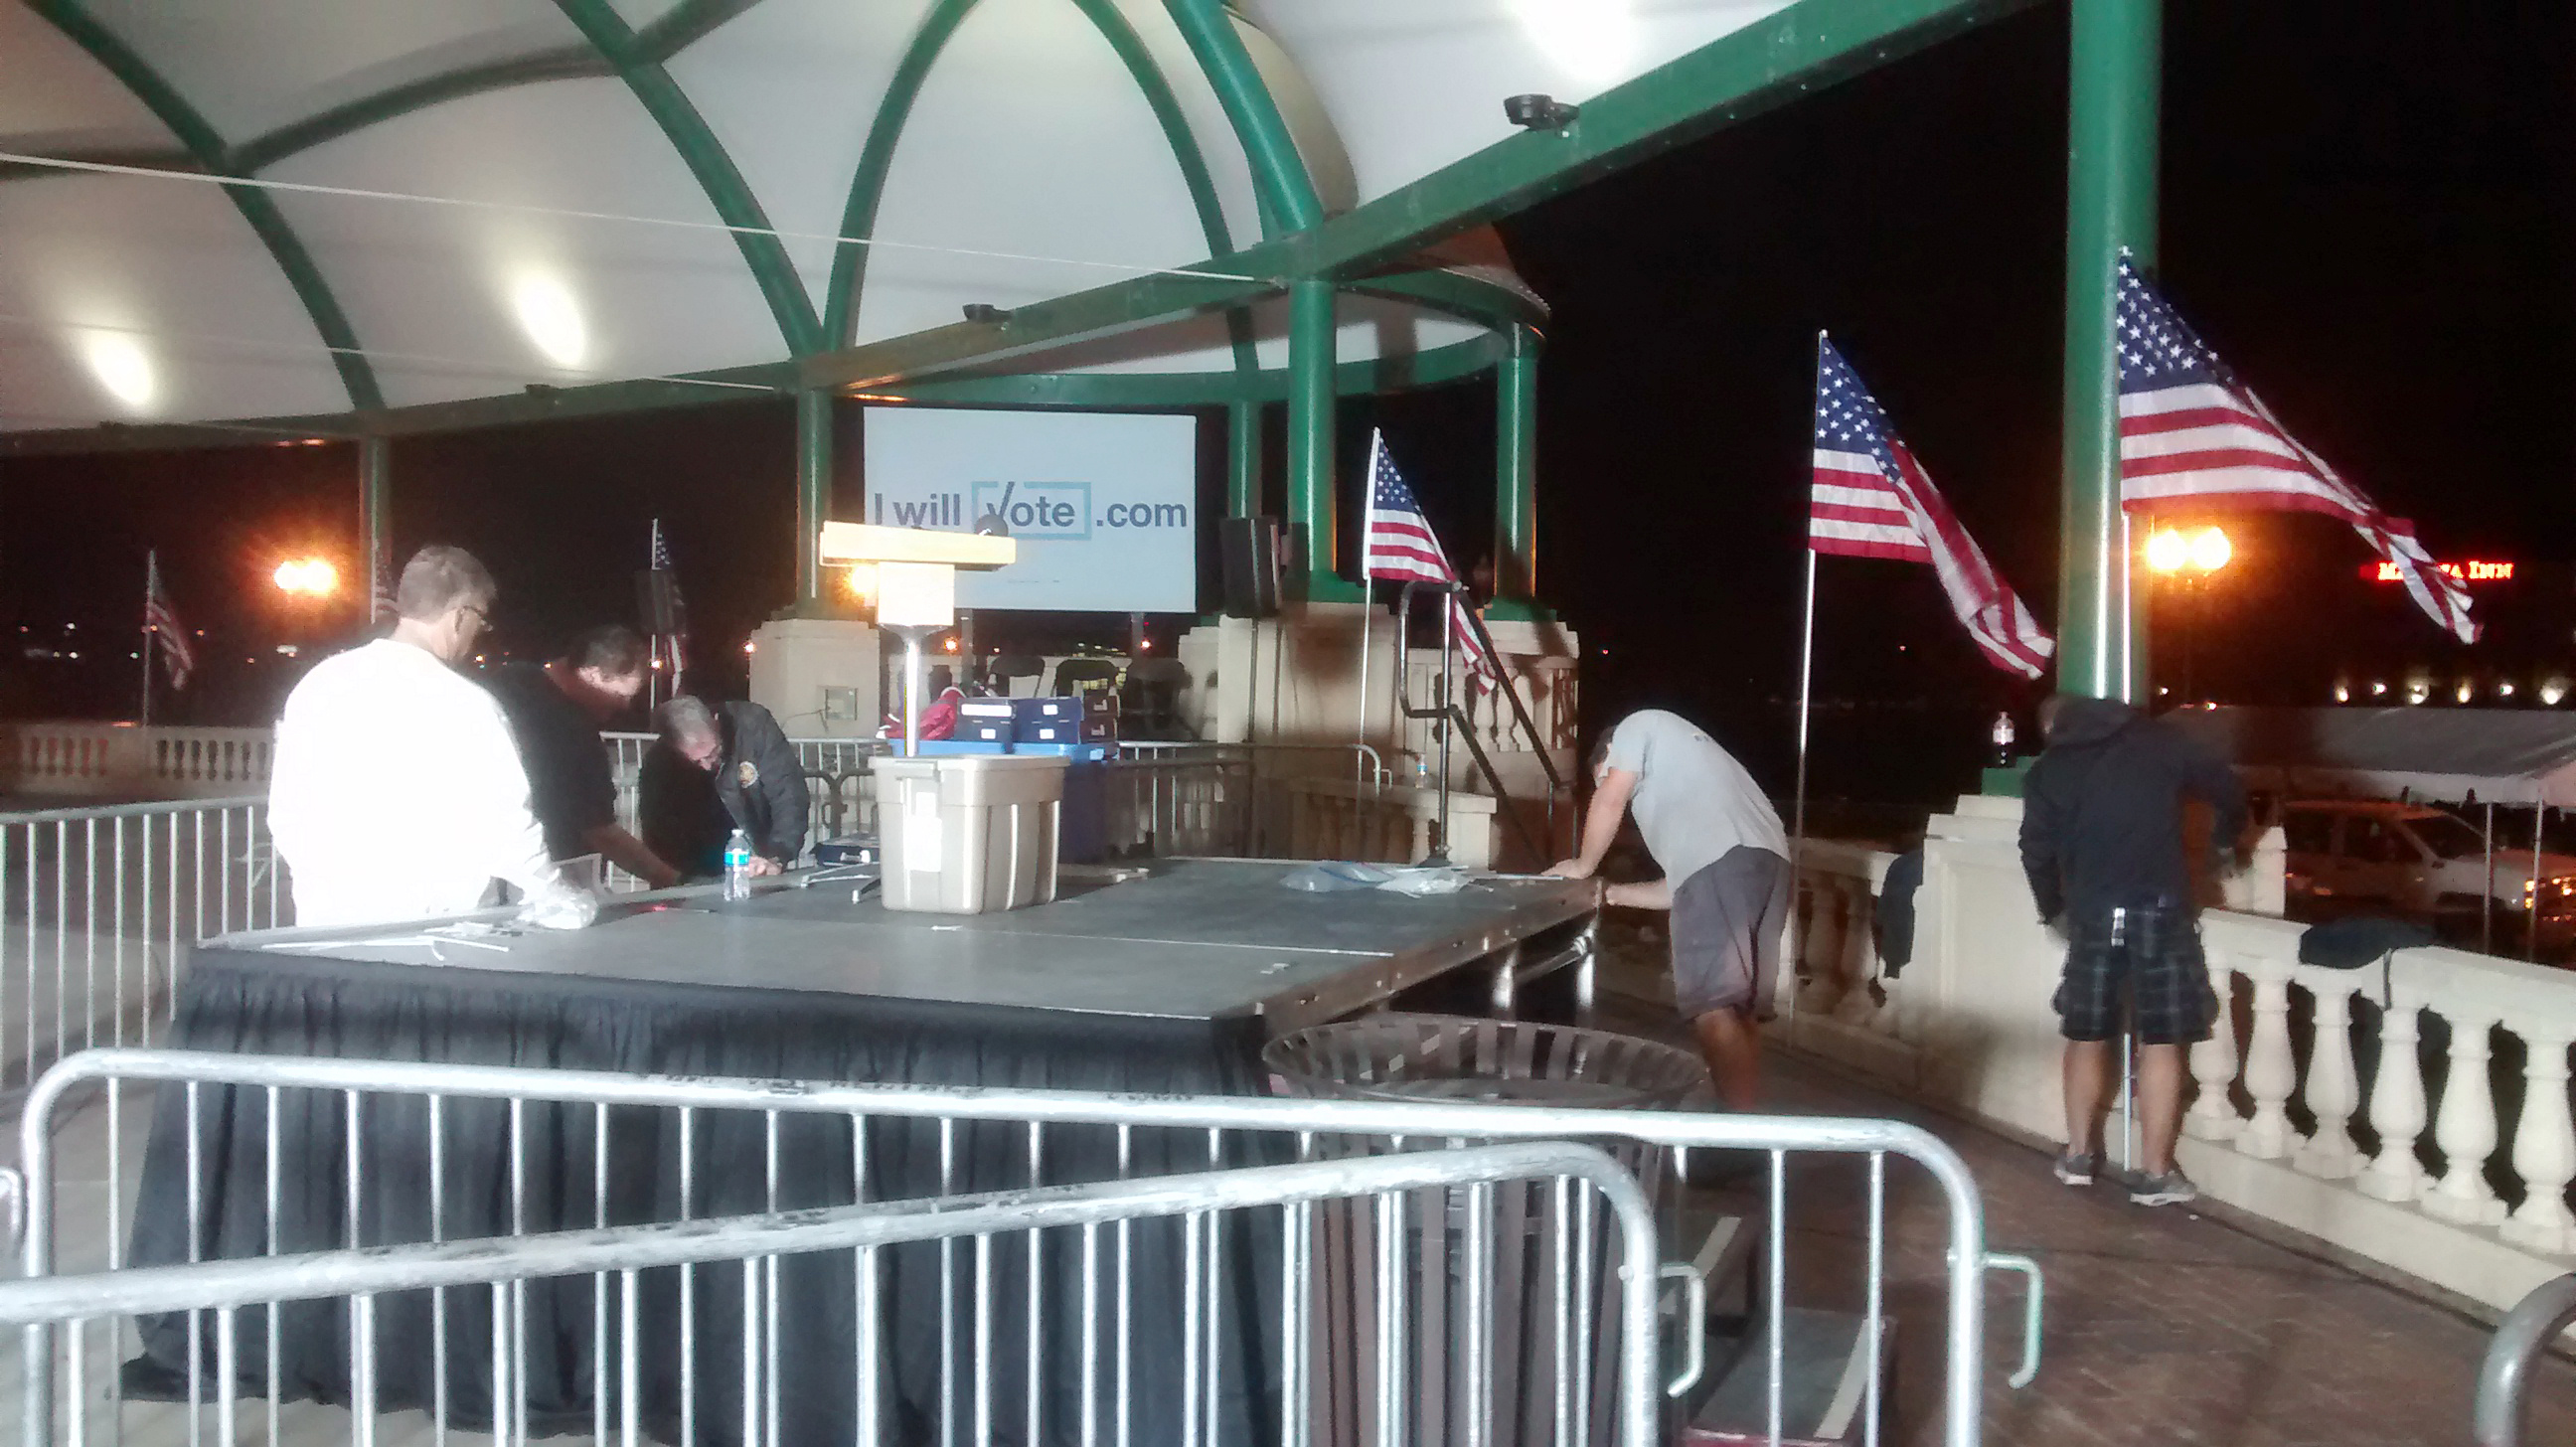 Stage with flags for a political event at Larsen Park Road, Sioux City, Iowa